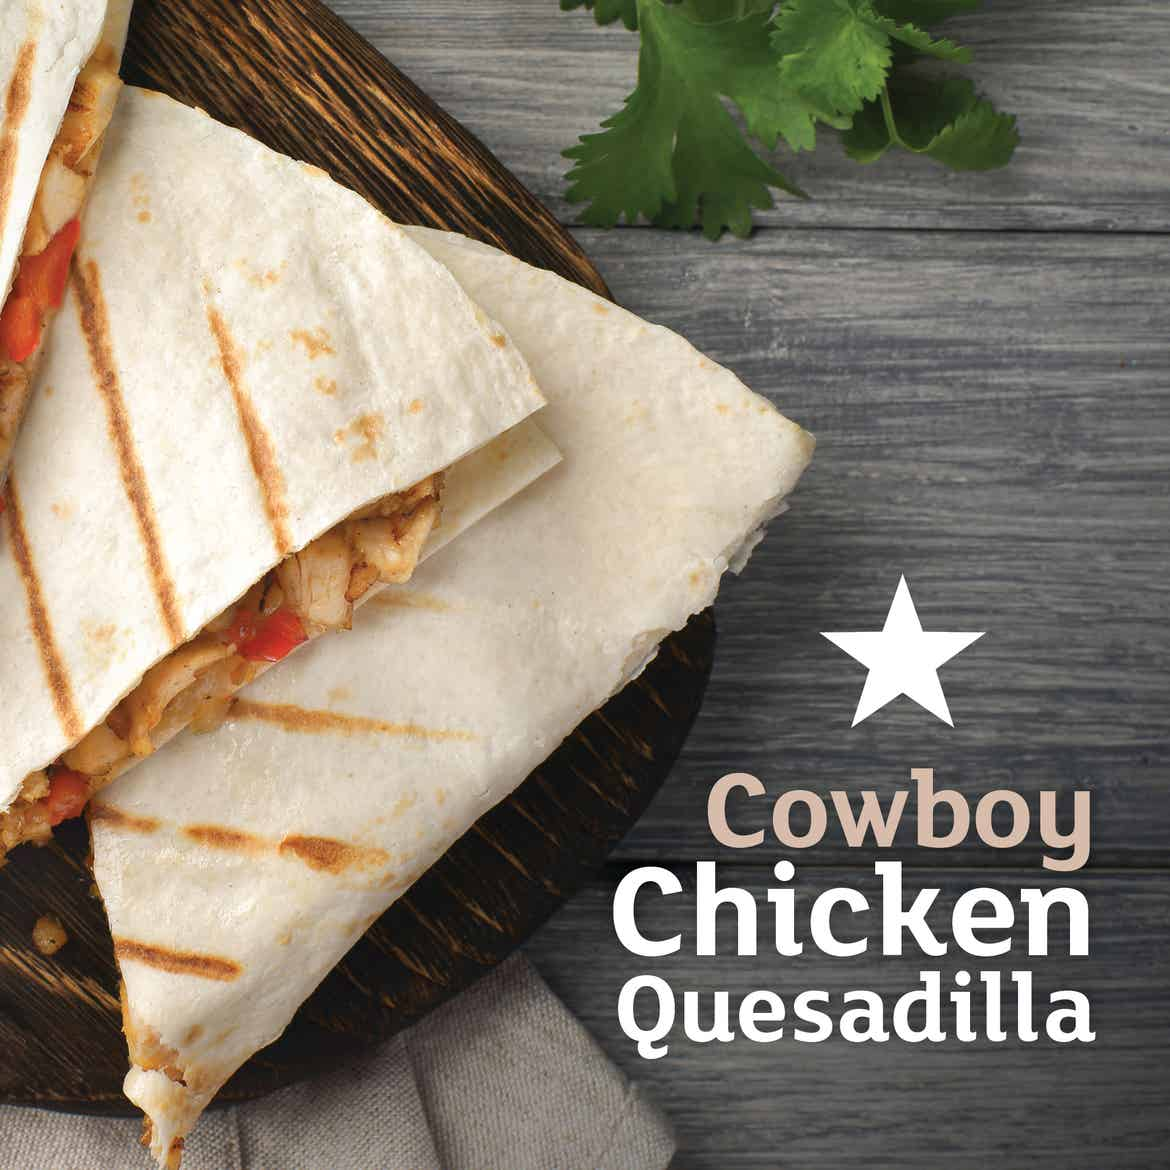 Three wedges of a quesadilla on a wooden cutting board and grey plank table. Type on the left says, 'Cowboy Chicken Quesadilla.'